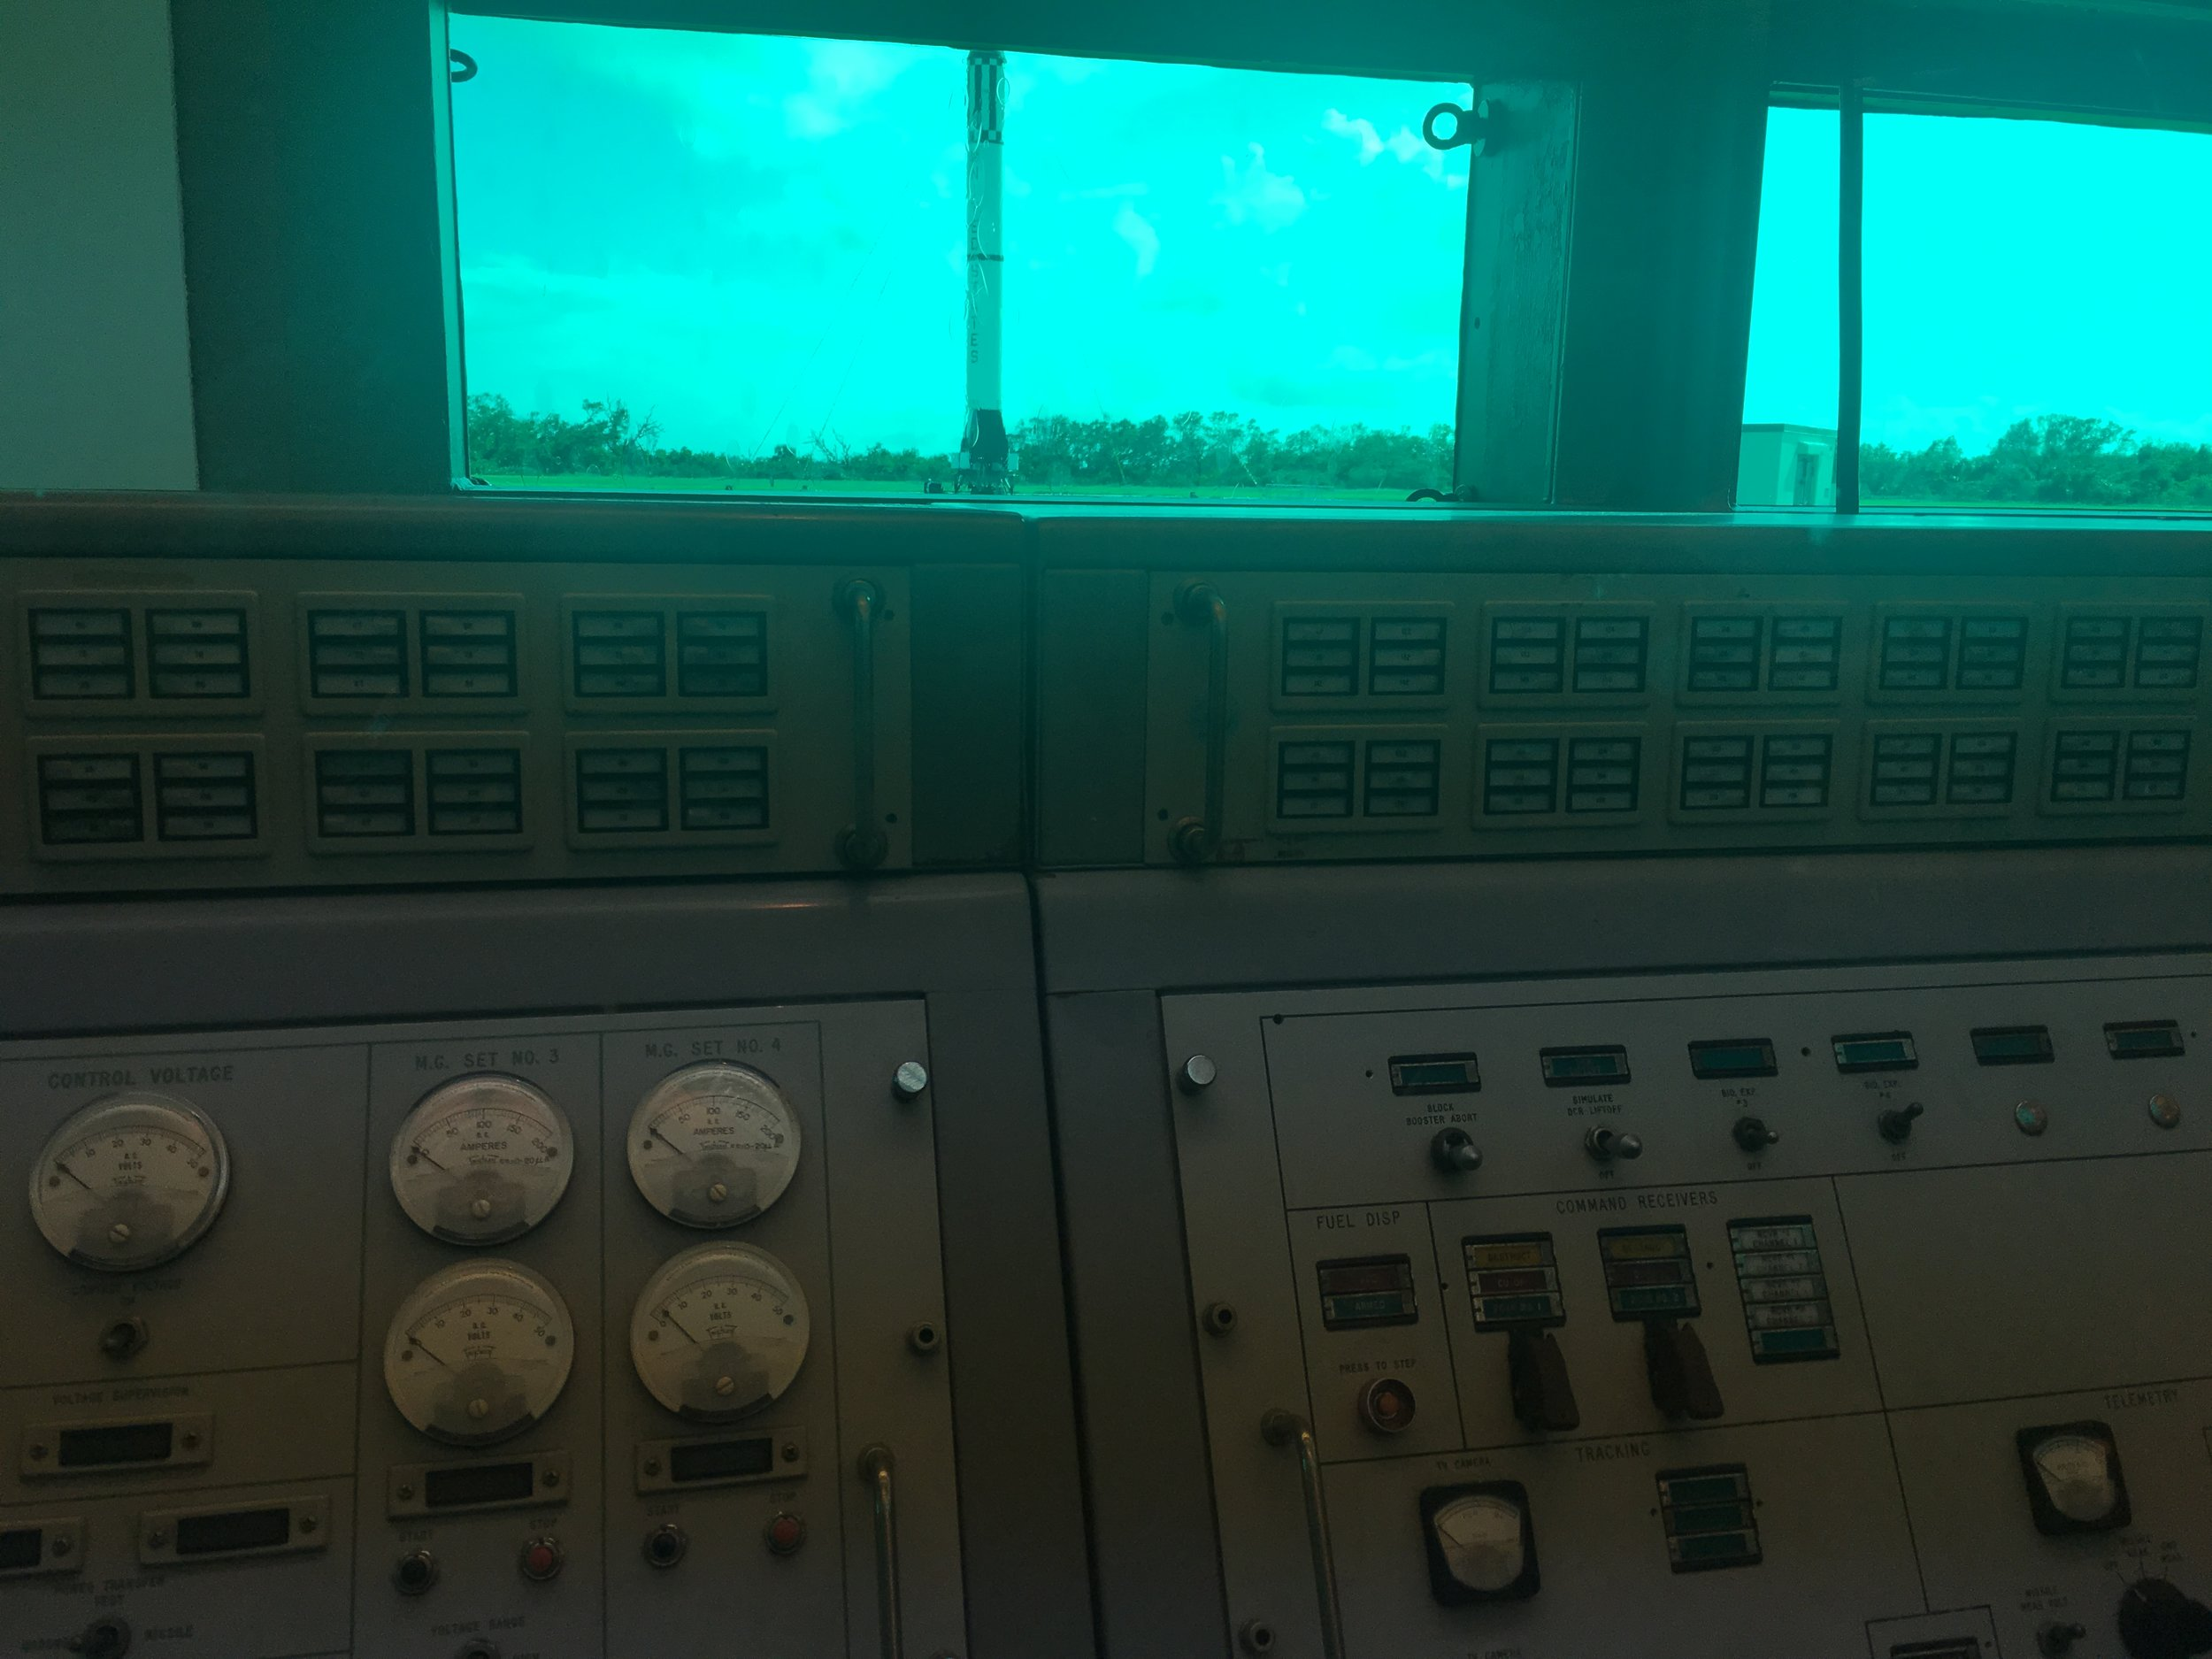 The launchpad seen from the safety of the firing room. The exact sight launch controllers saw.